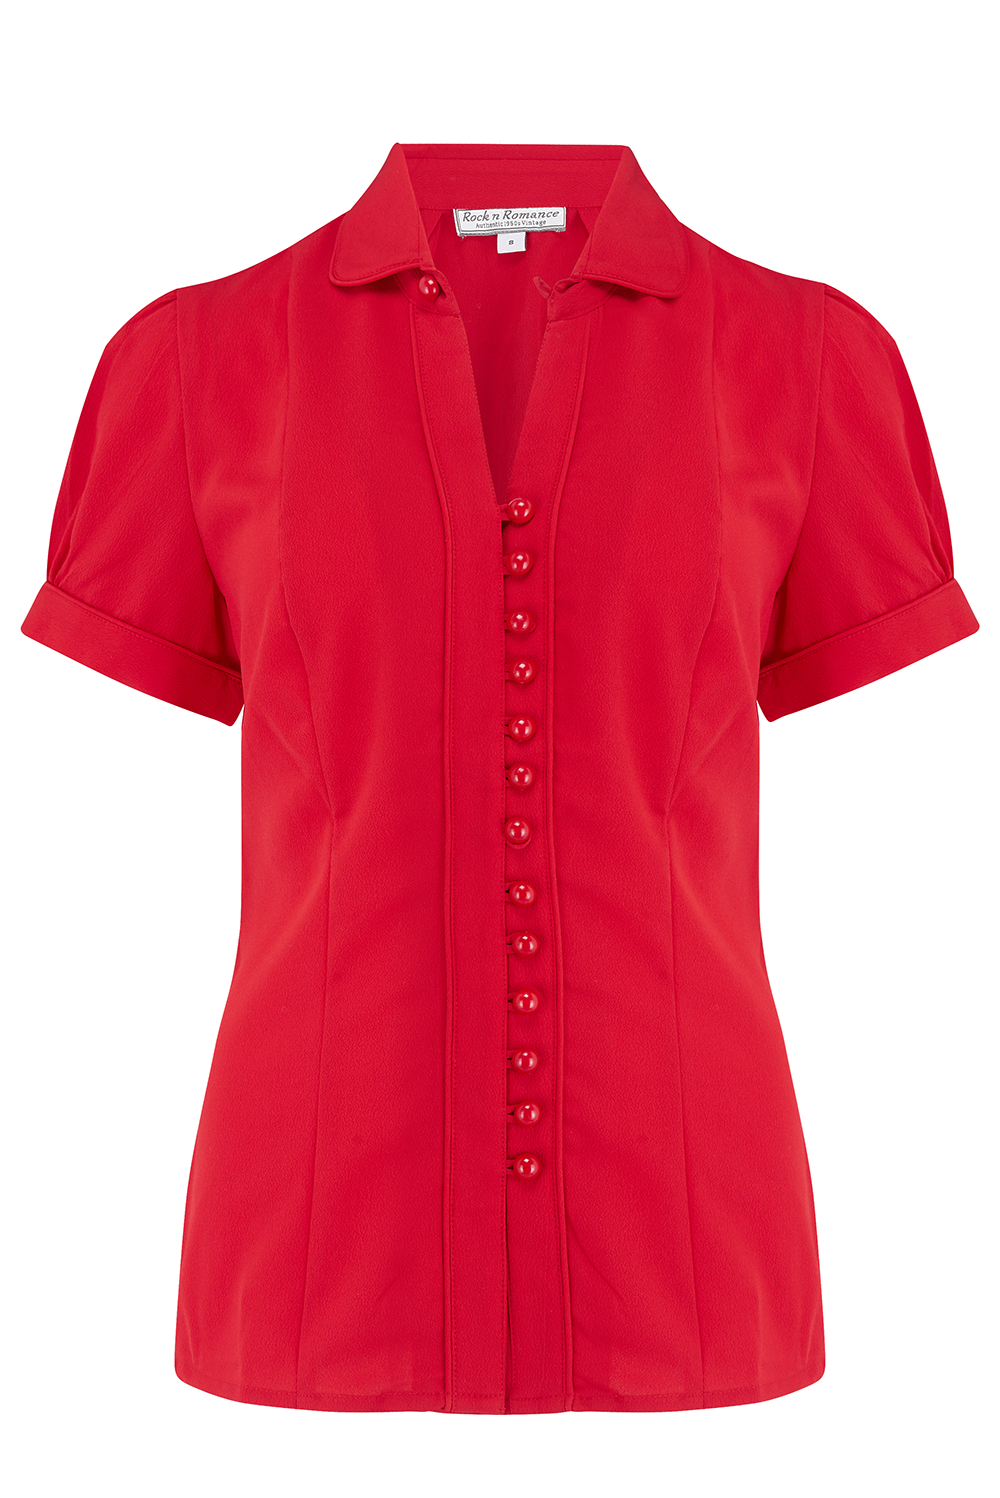 "Rock n Romance **Pre-Order** The ""Margot"" Blouse in Solid Red, True & Classic Easy To Wear Vintage Style - RocknRomance Clothing"